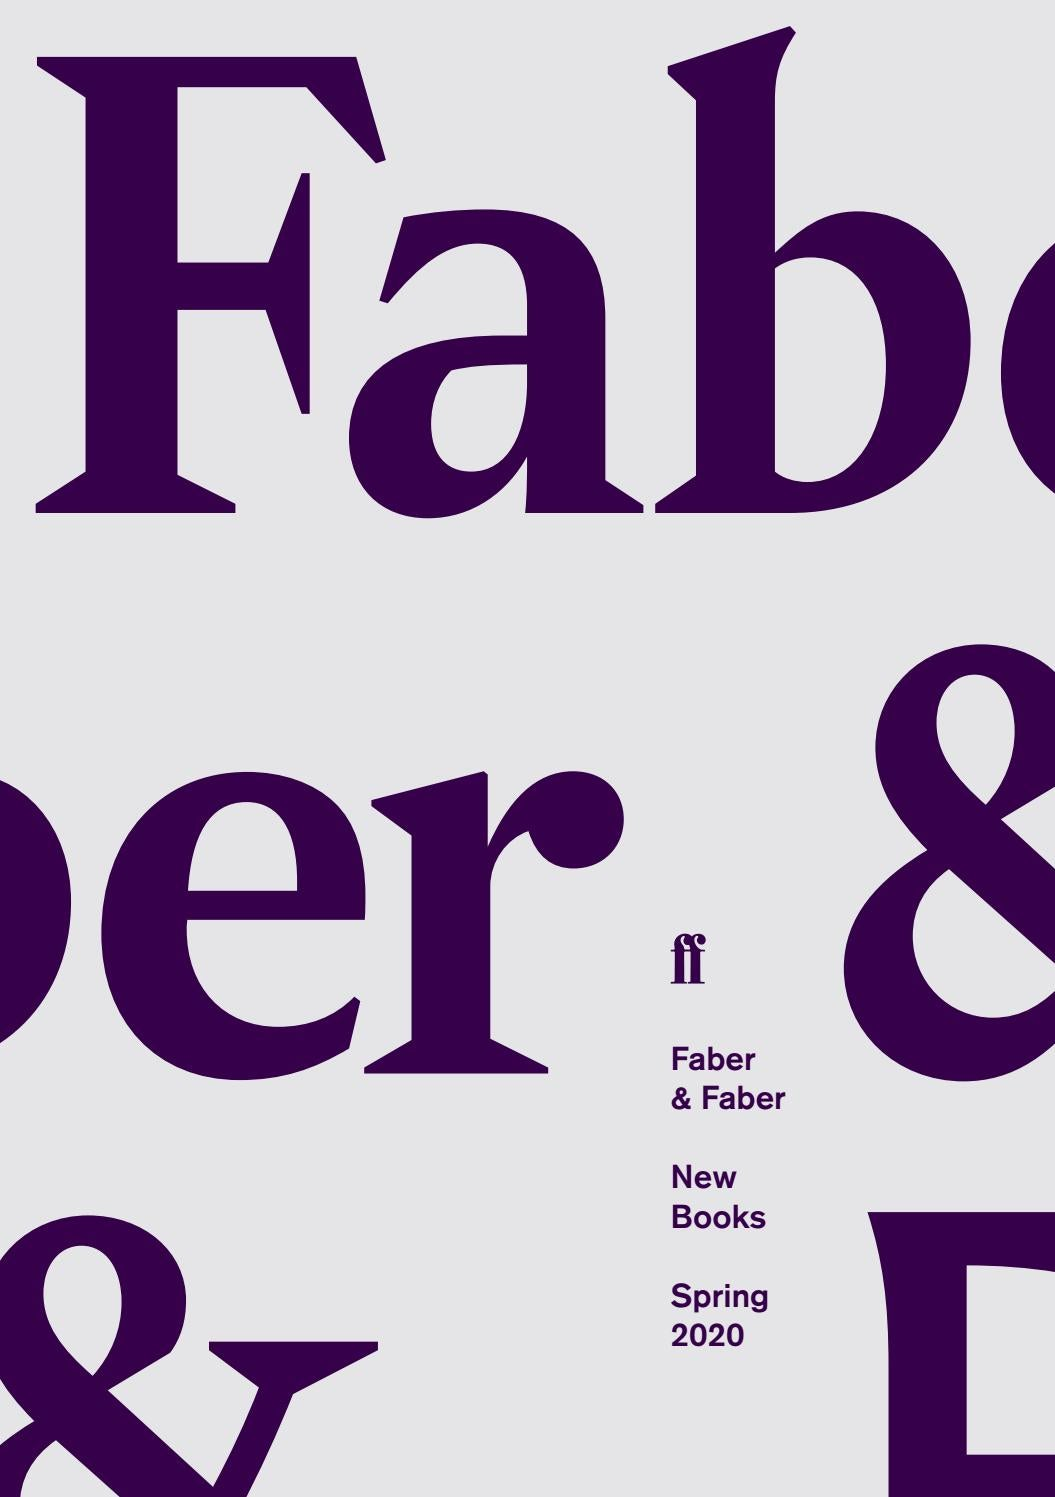 Emerson College Spring 2020.Seasonal Catalogue January June 2020 By Faber And Faber